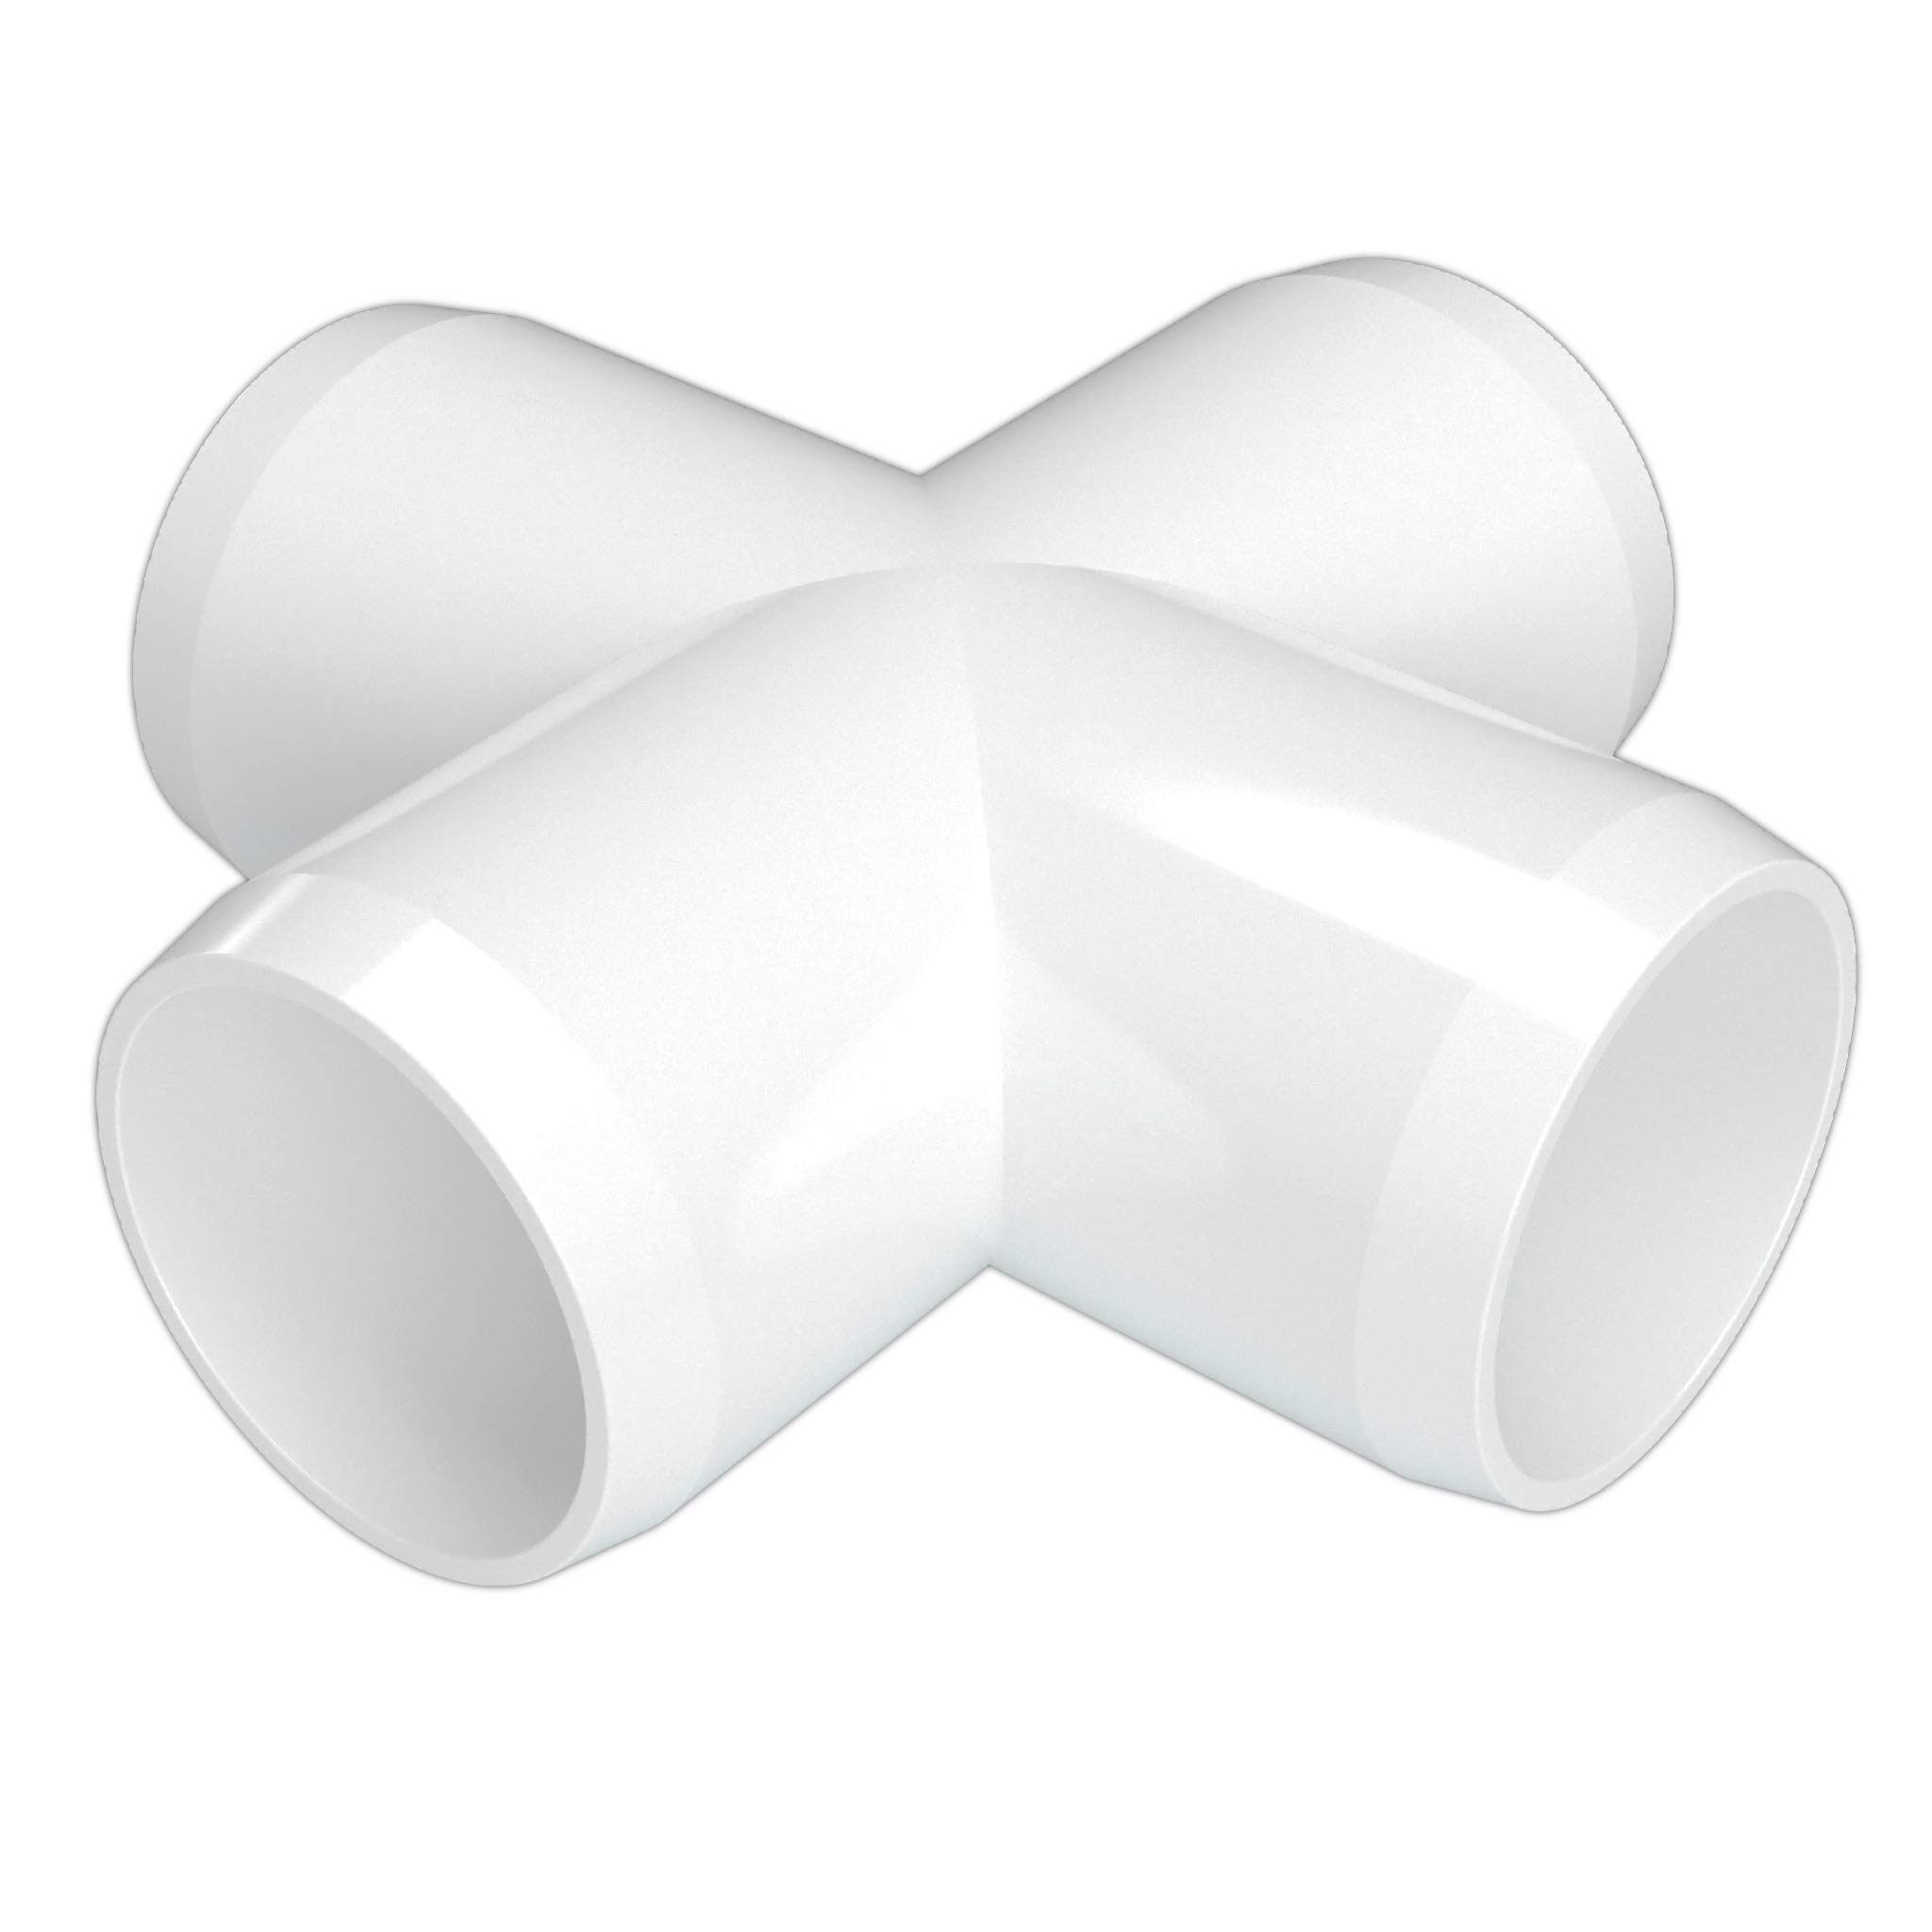 FORMUFIT F012CRX-WH-10 Cross PVC Fitting, Furniture Grade, 1/2'' Size, White (Pack of 10)